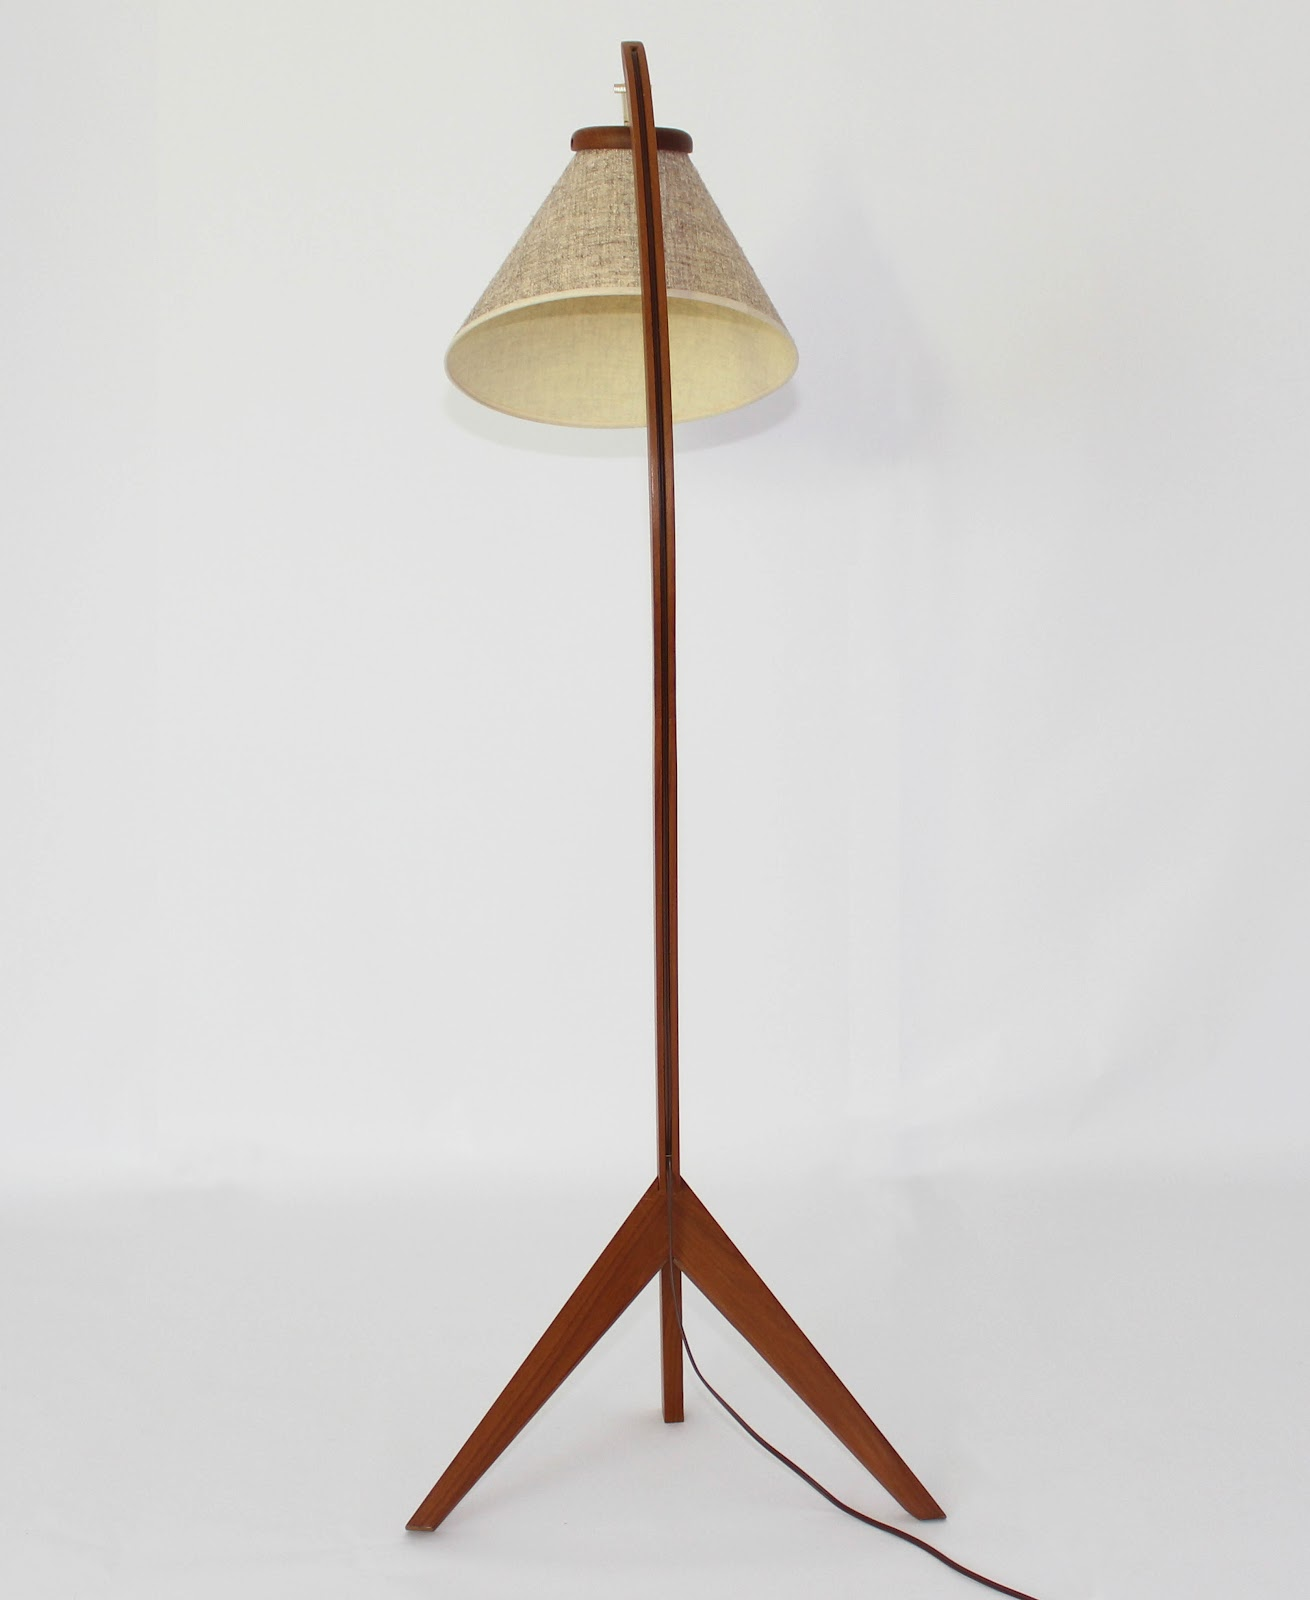 Mansion Decor: Mid Century Danish teak Bow Floor Lamp